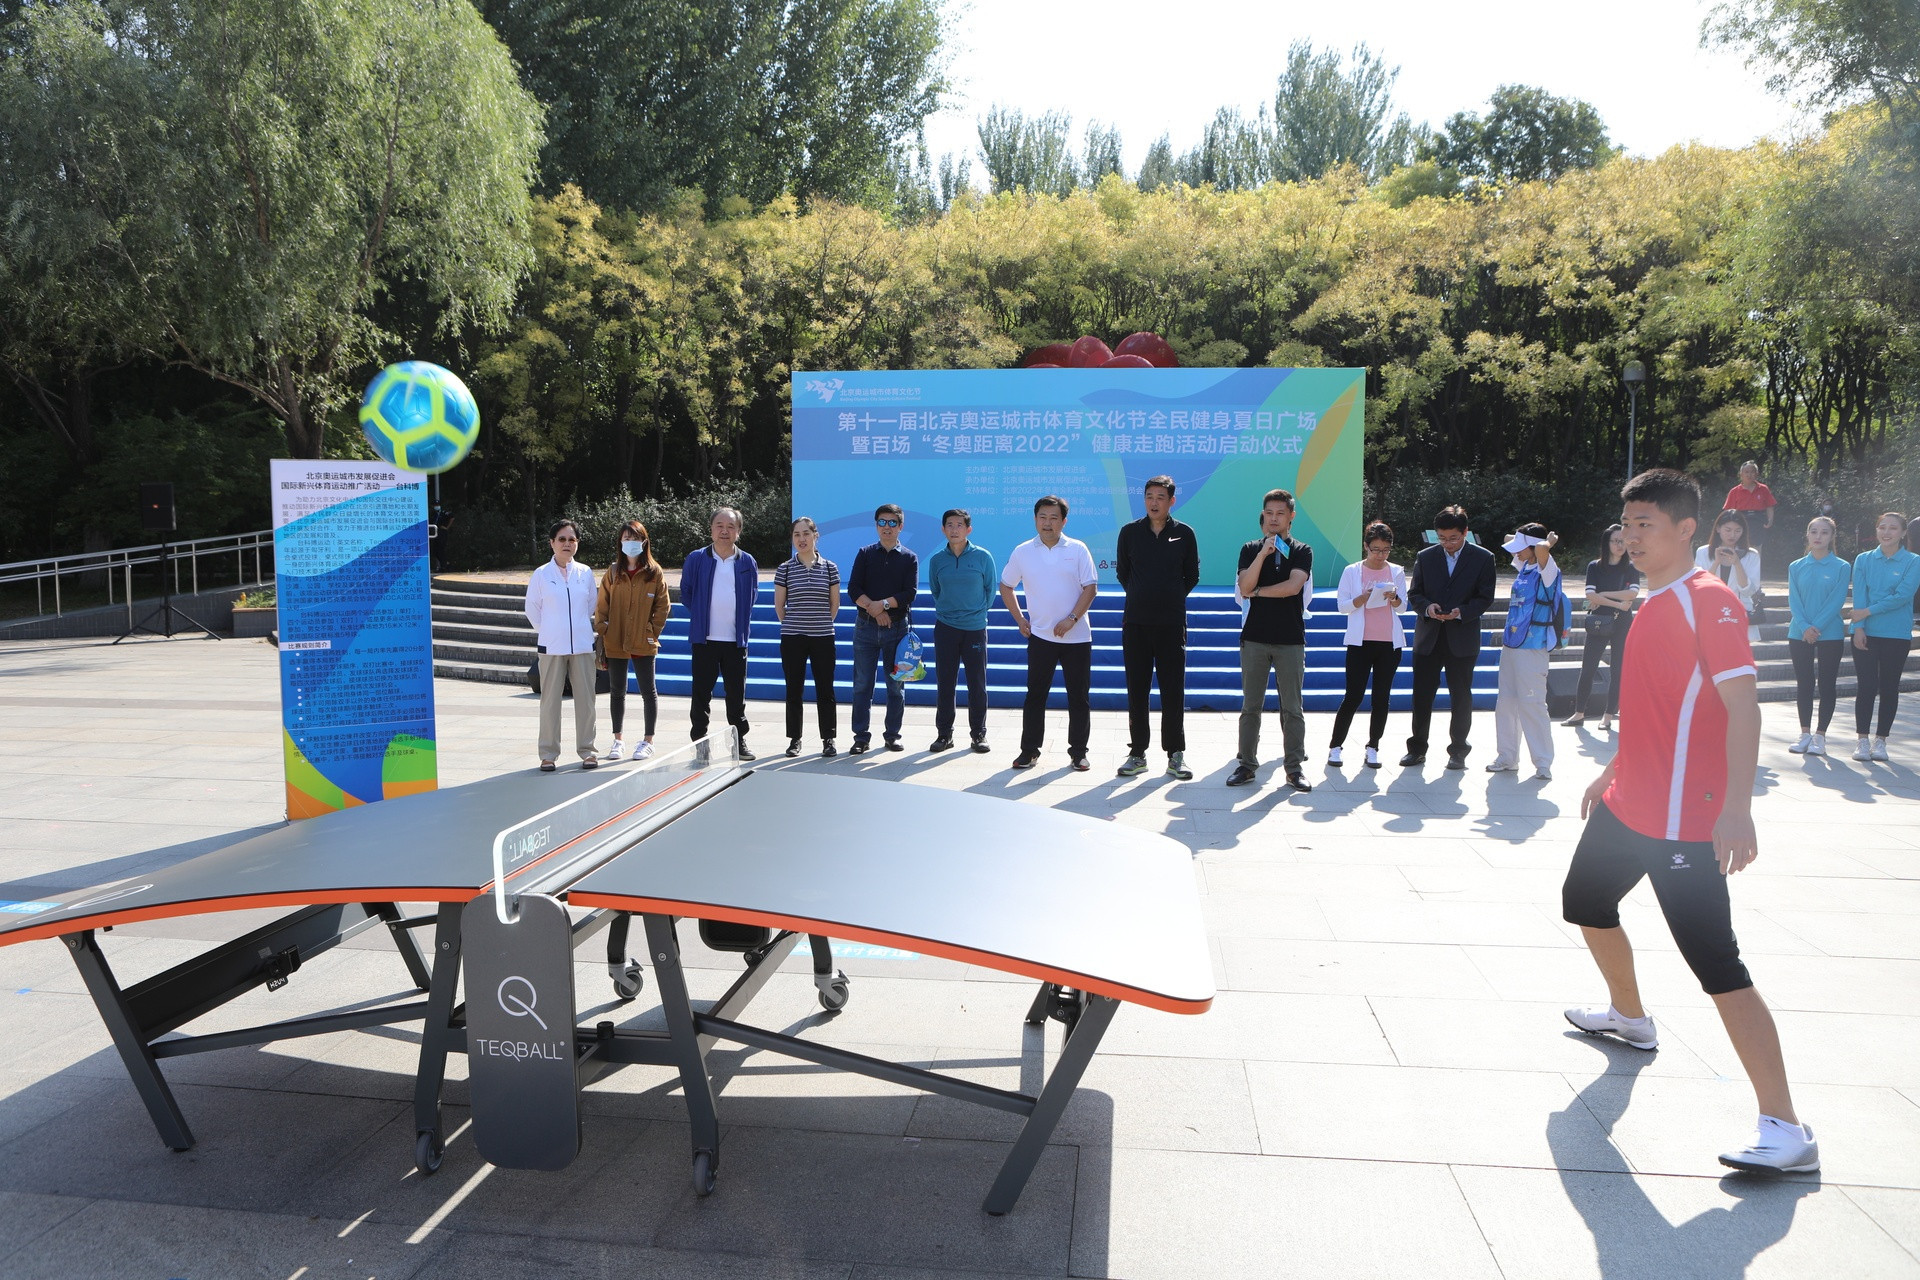 Teqball launched in Beijing as FITEQ partners with Olympic City Development Association